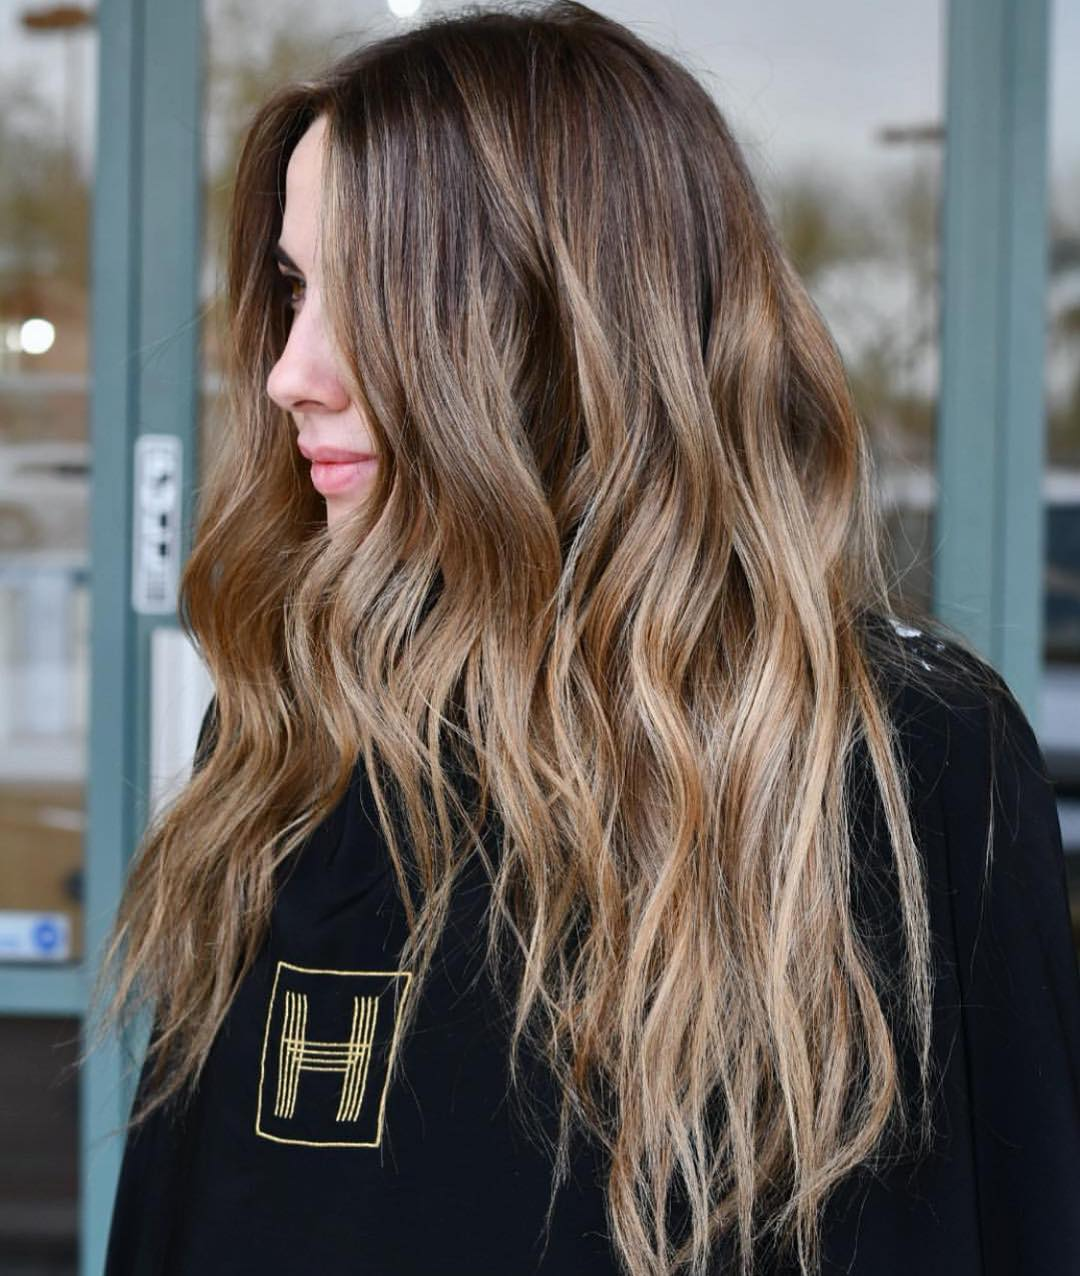 Shiny Light Brown Waves with Dark Roots